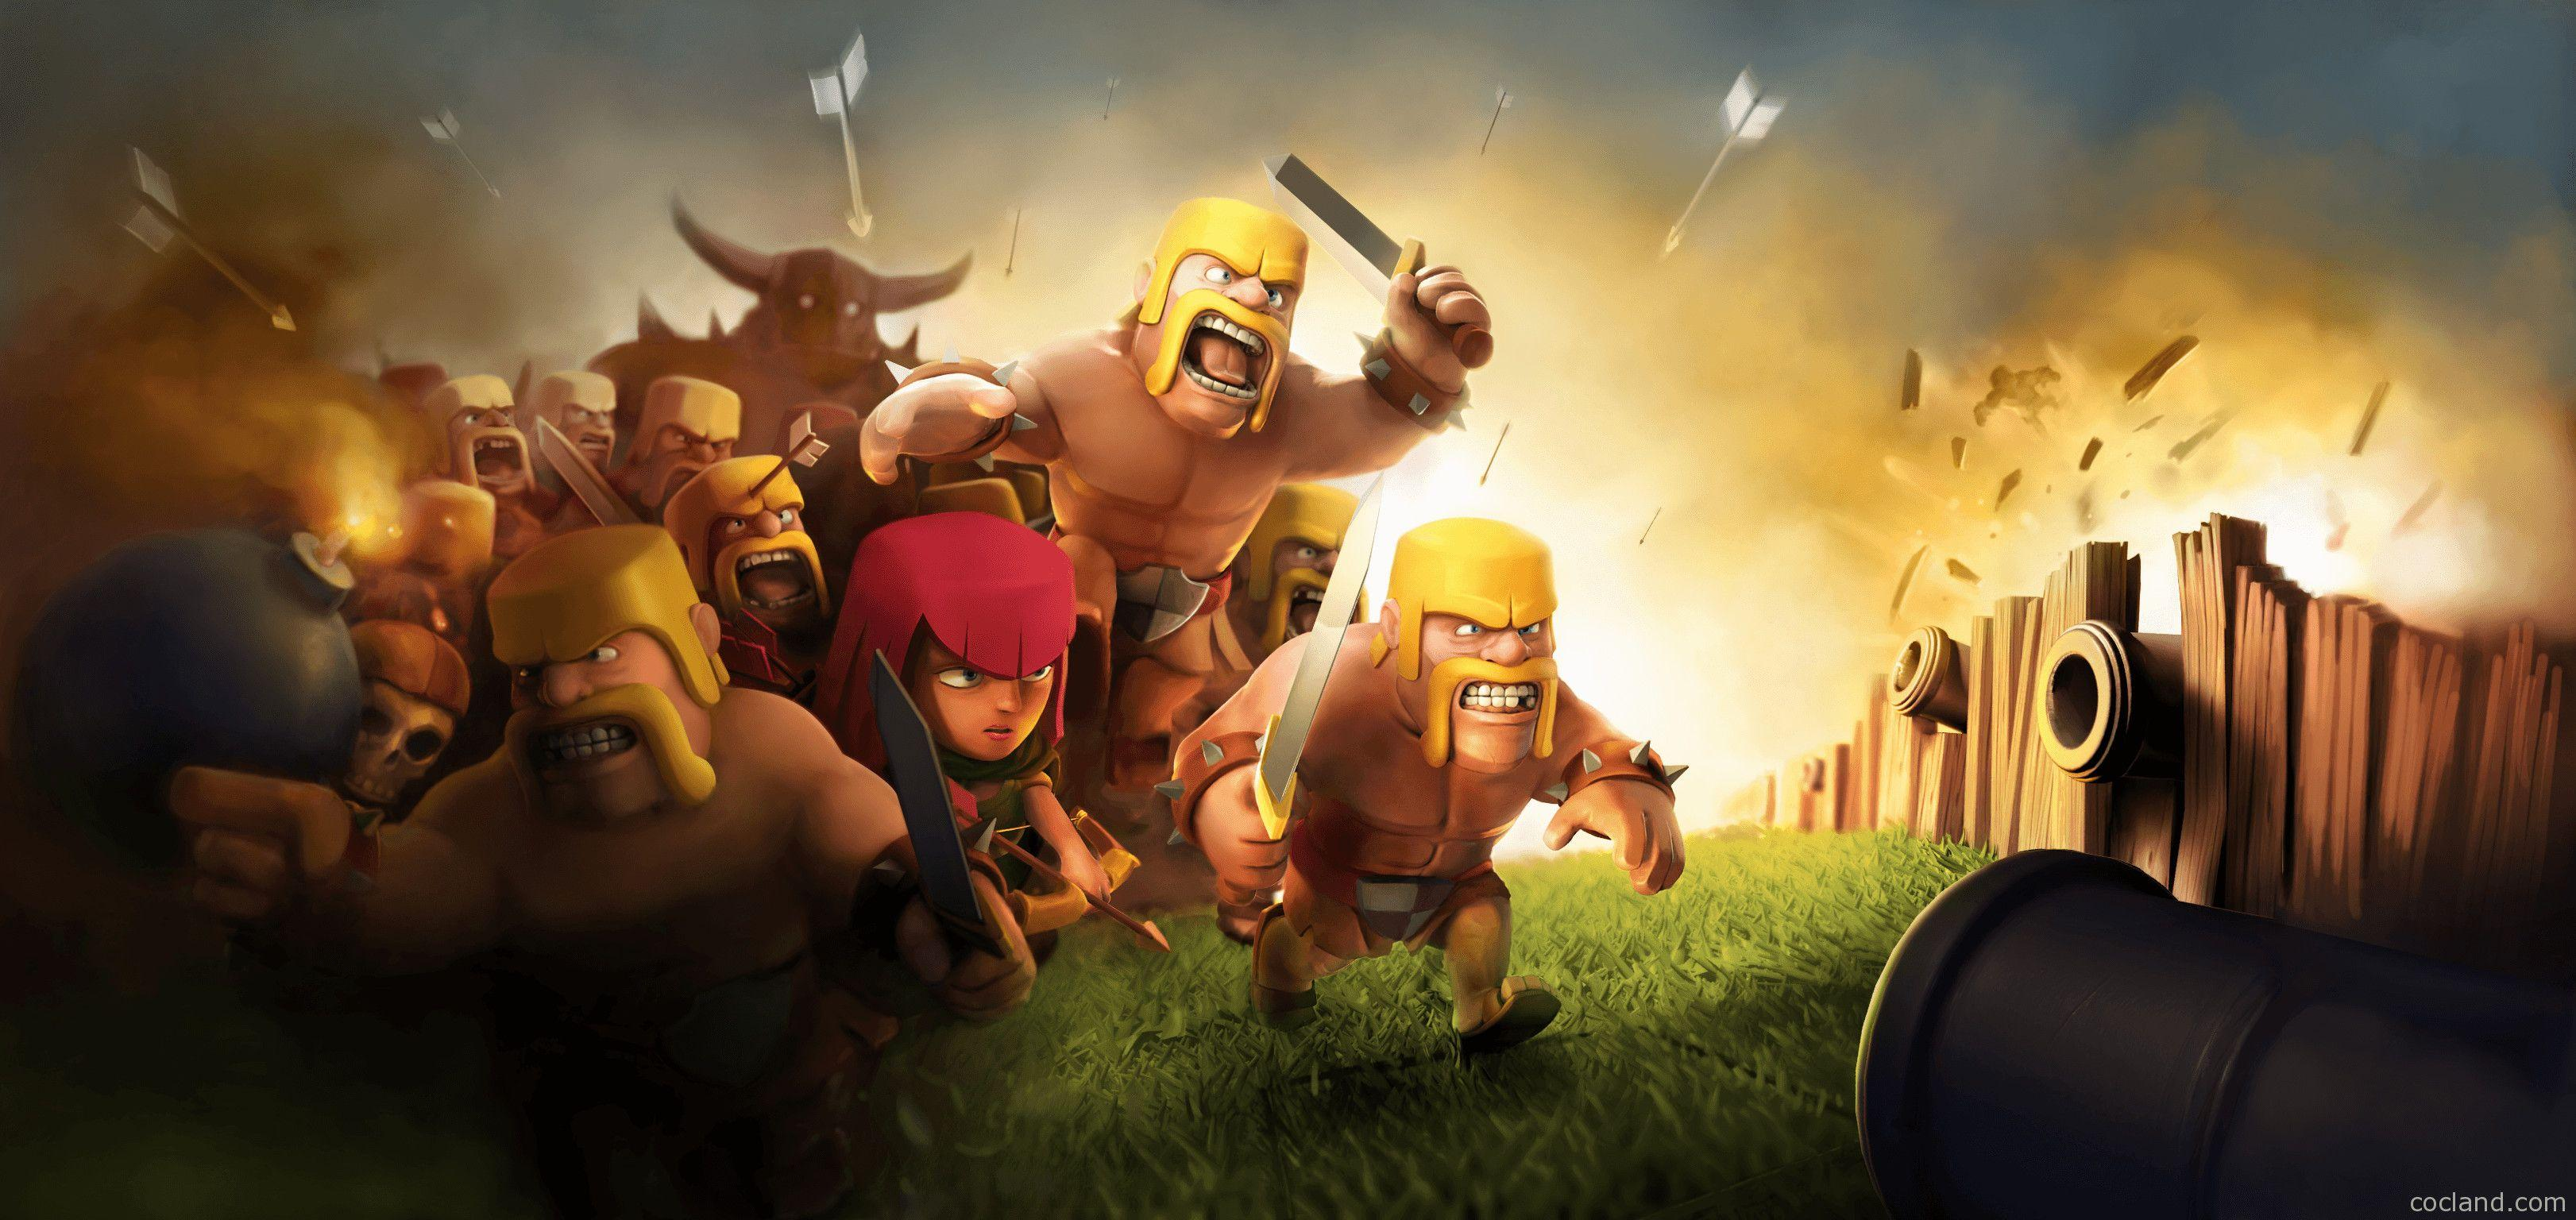 Clash of Clans Wallpapers